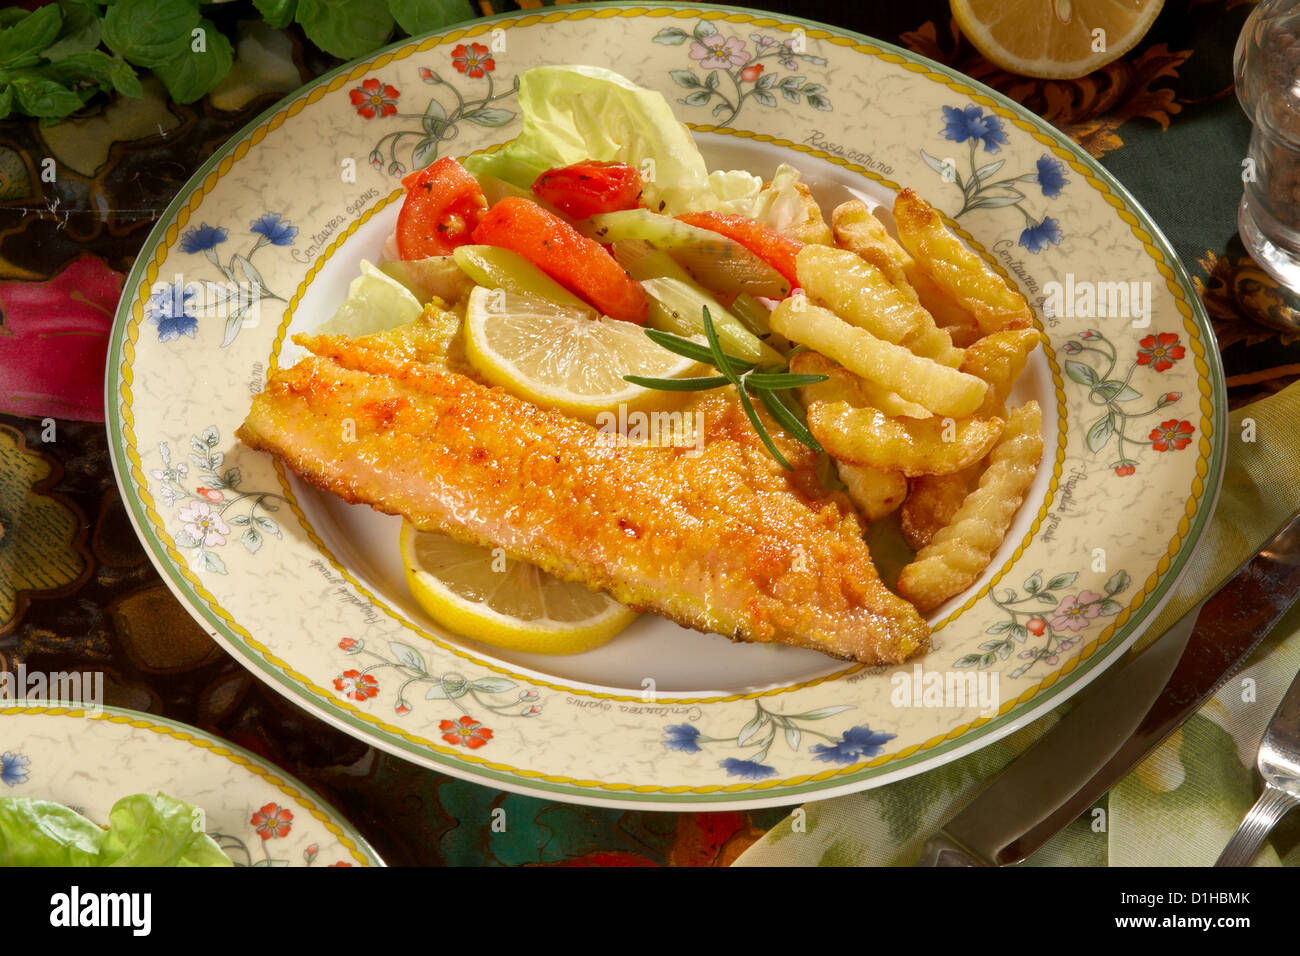 Fish baked with herbs - Stock Image